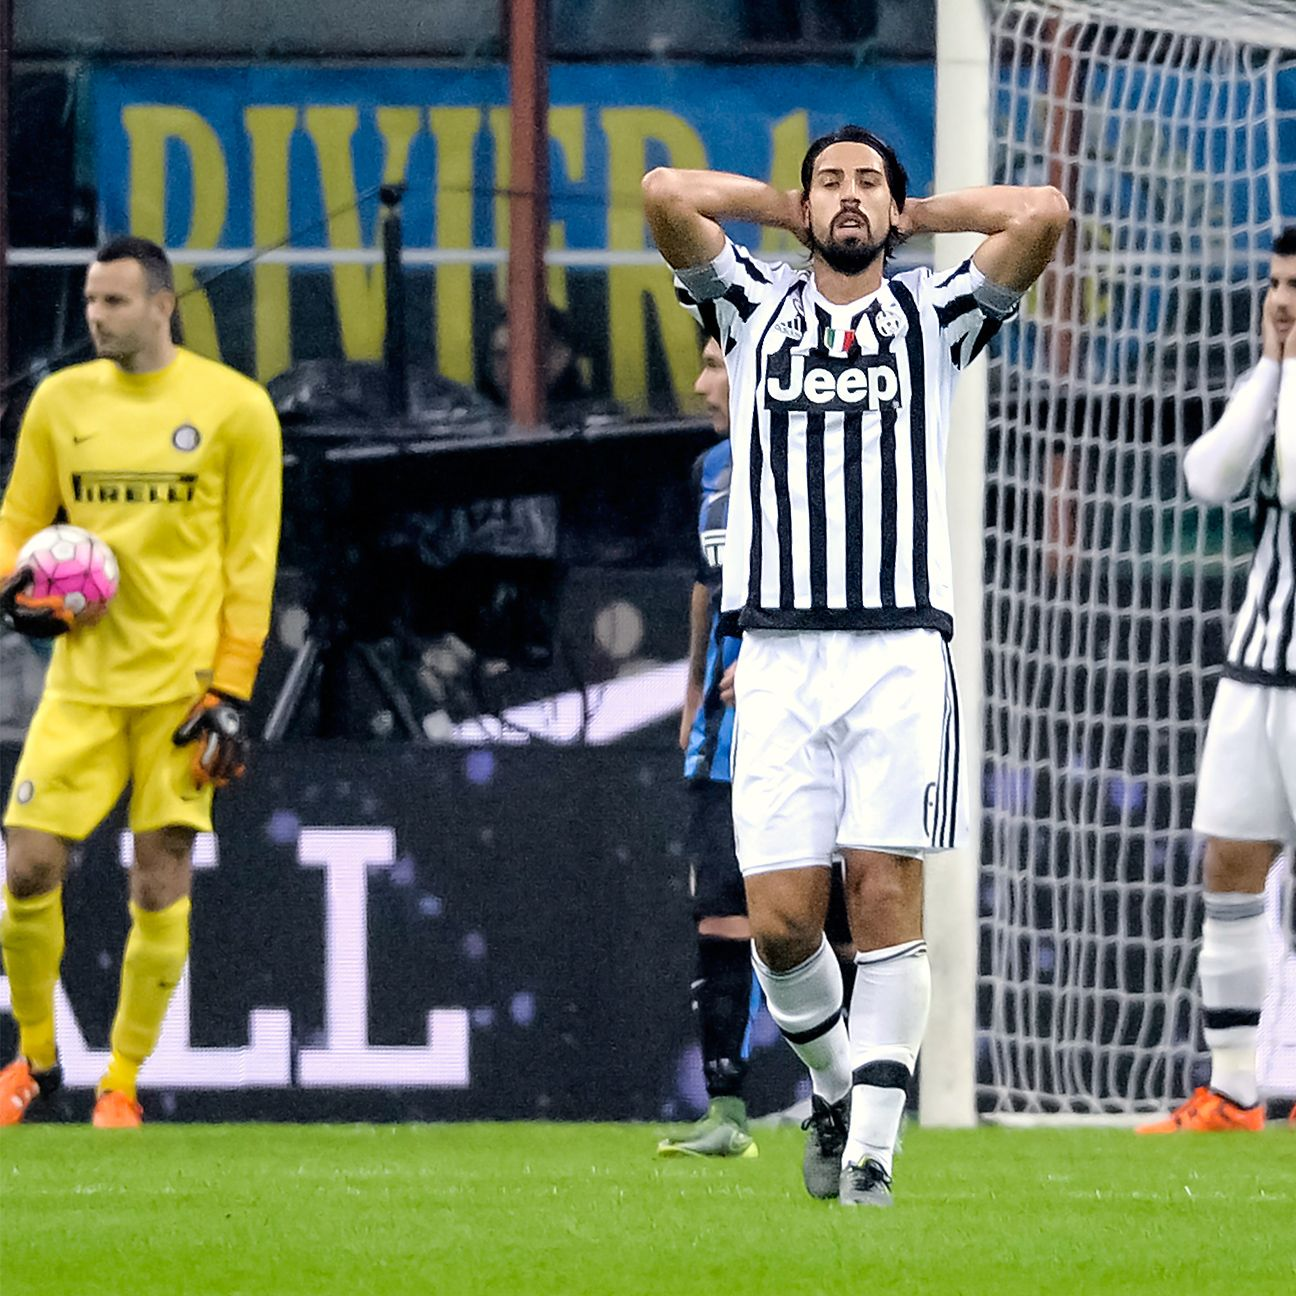 Sami Khedira and Juventus will be well-positioned to reach the Champions League knockout round should they defeat Borussia Monchengladbach.